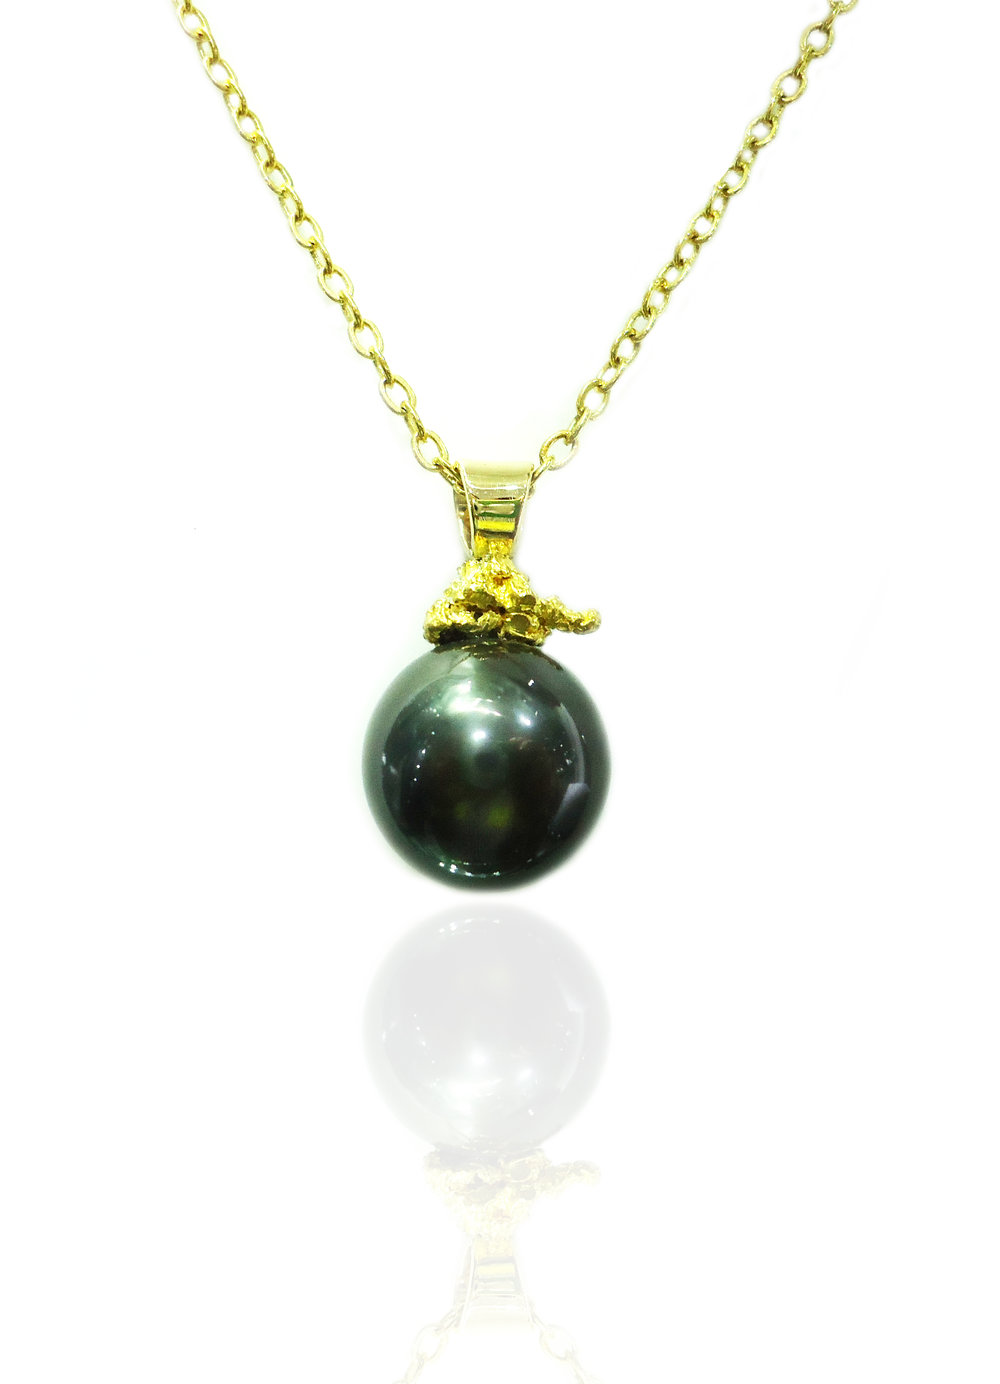 Pearl golden nugget pendant!